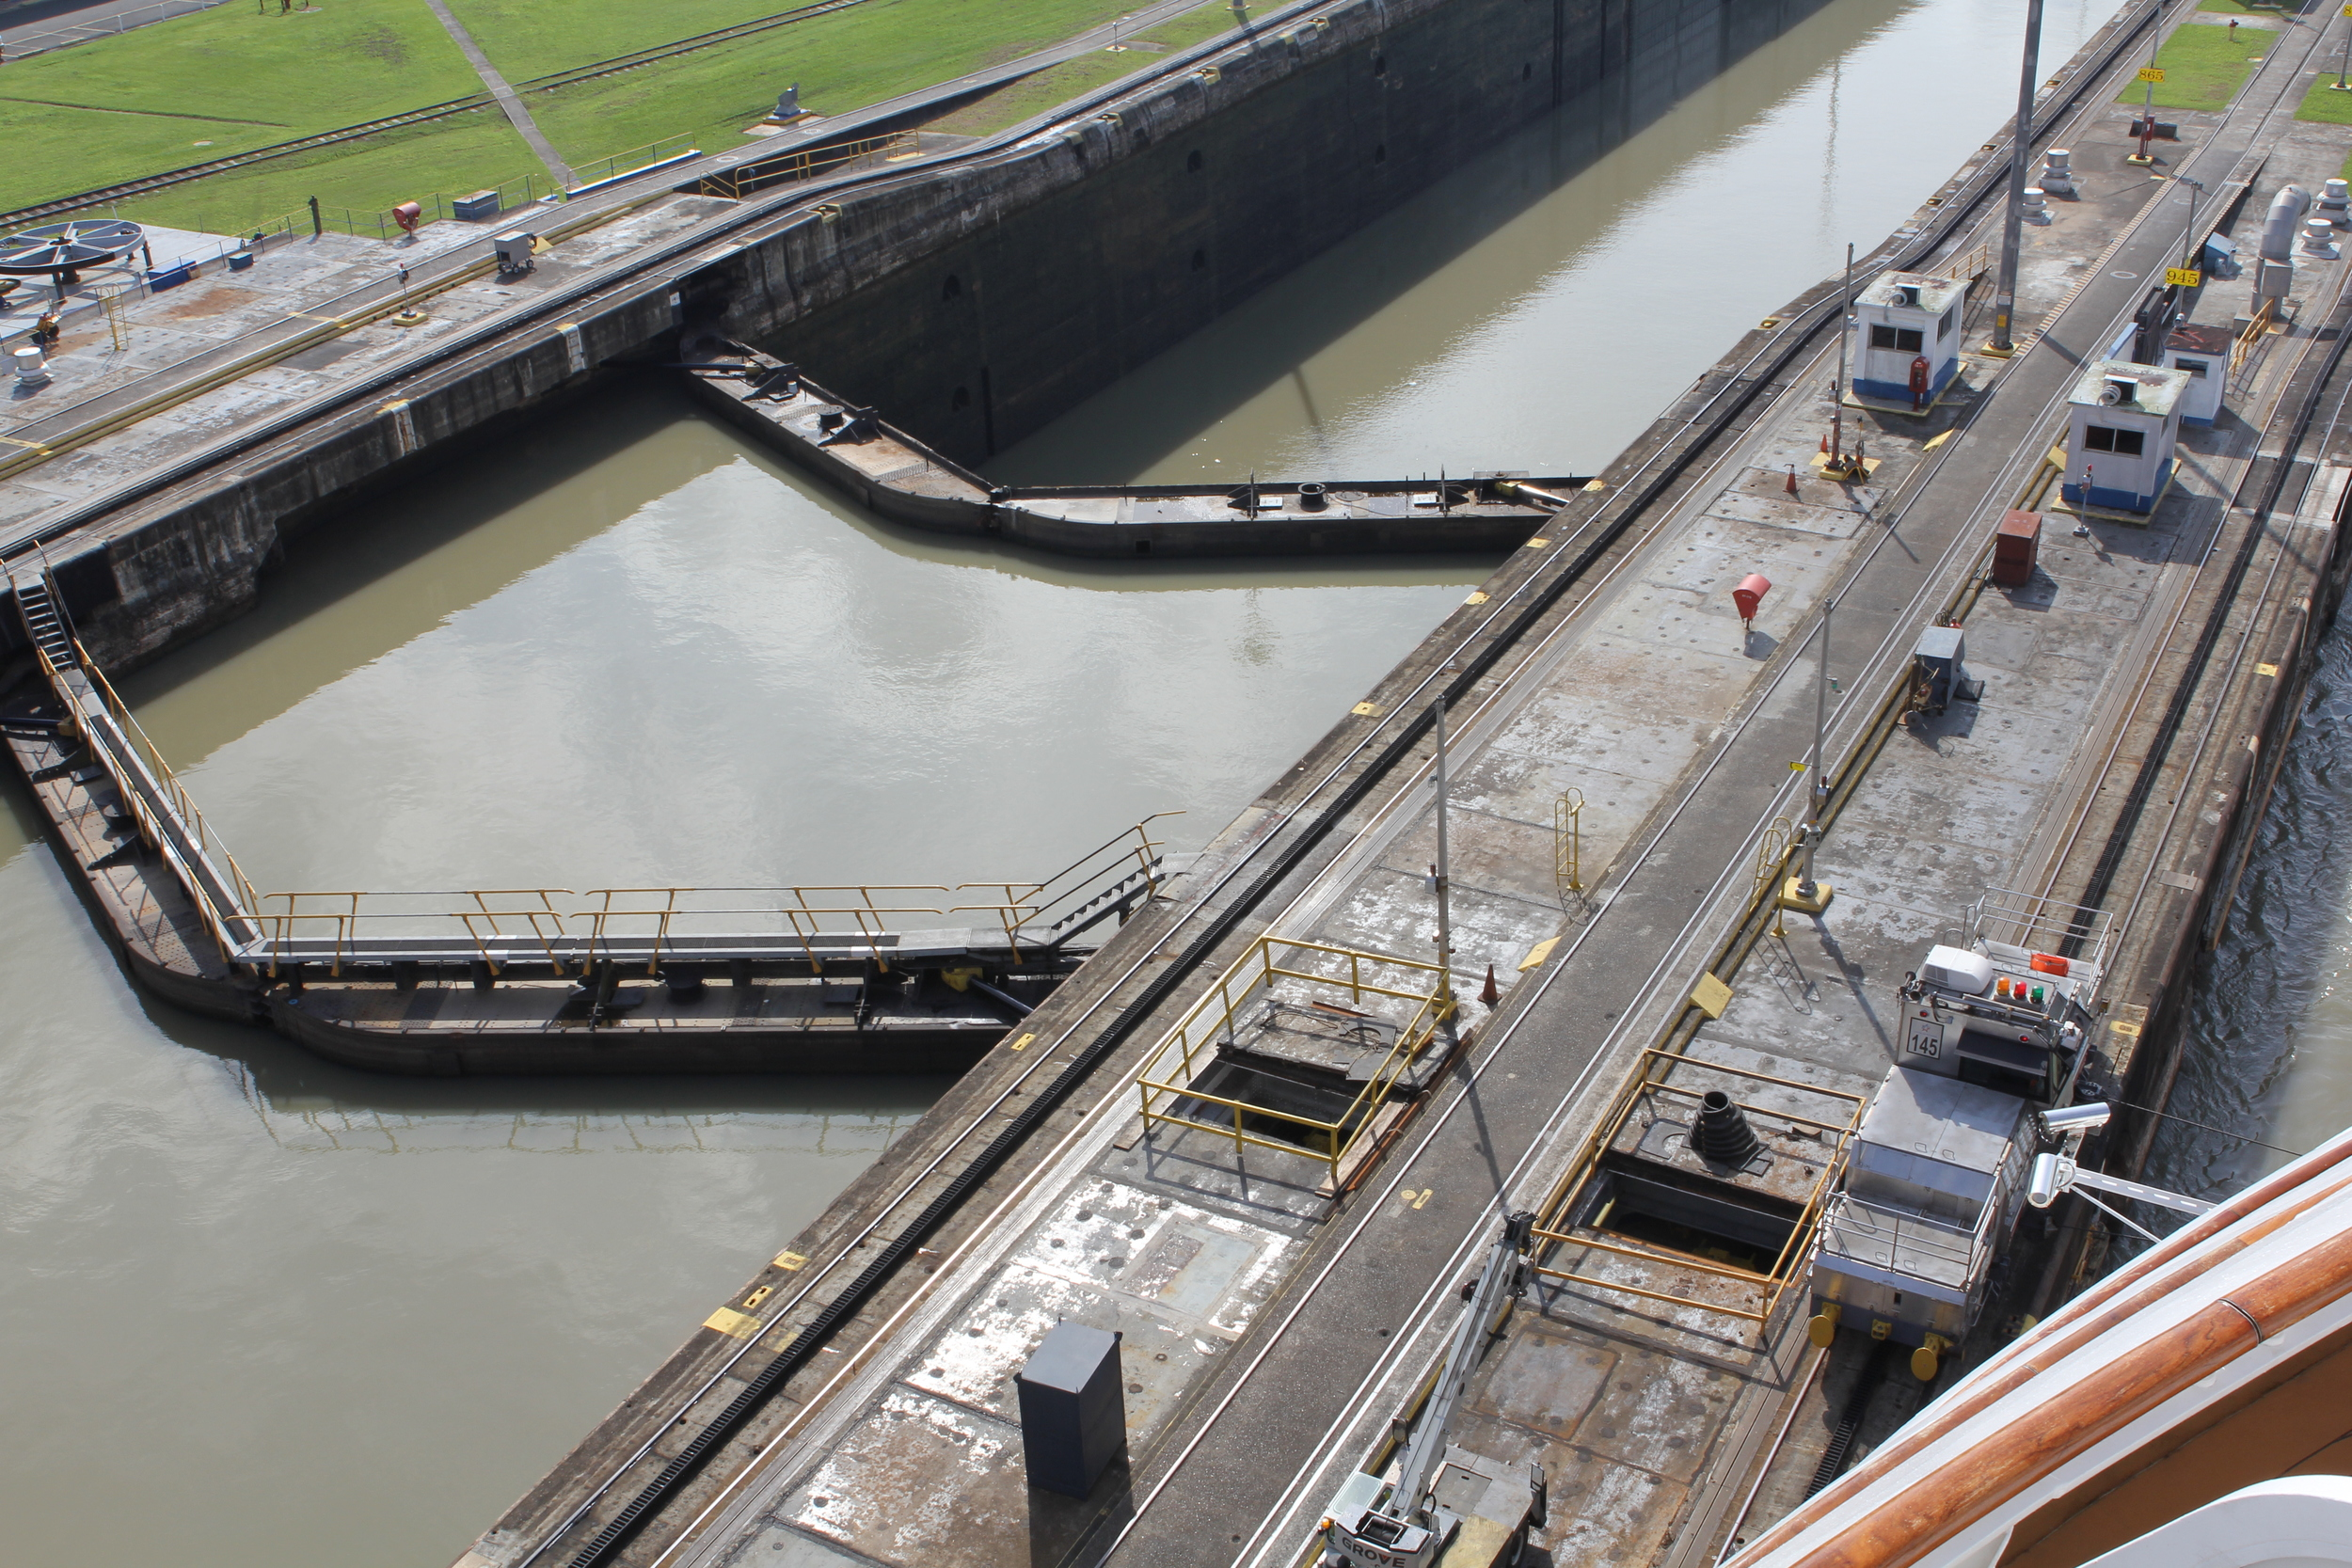 double gates at the top of the lock.